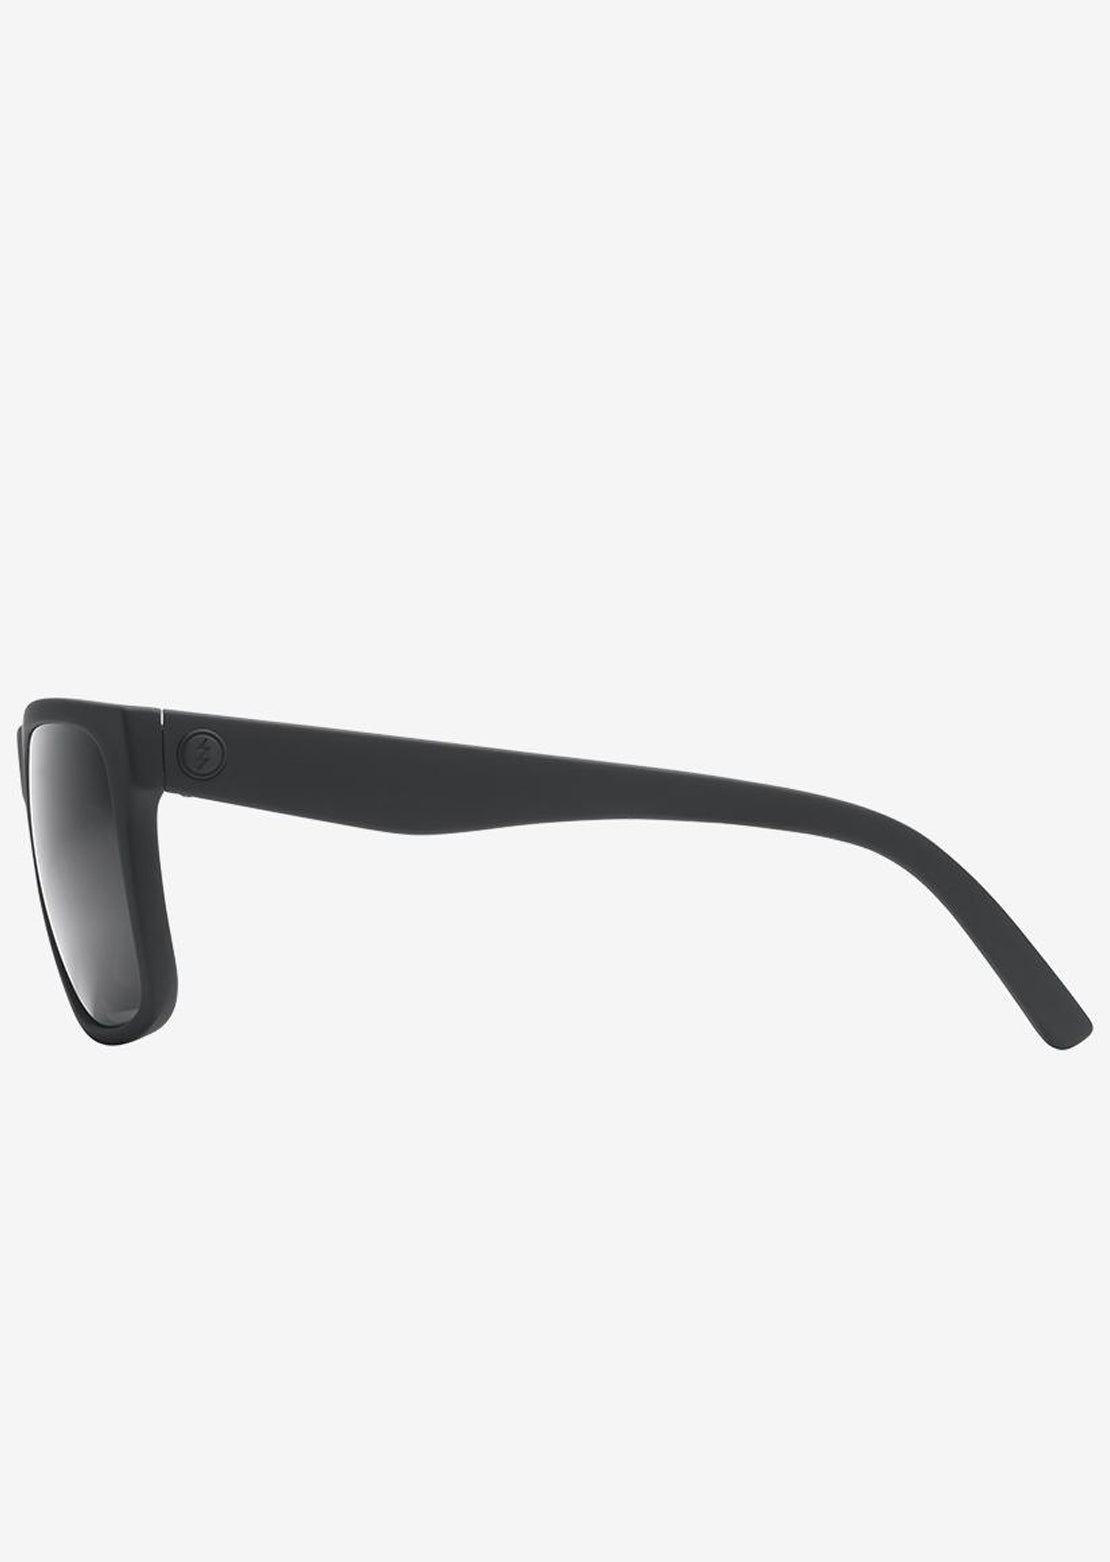 Electric Men's Swingarm XL Sunglasses Matte Black/Grey